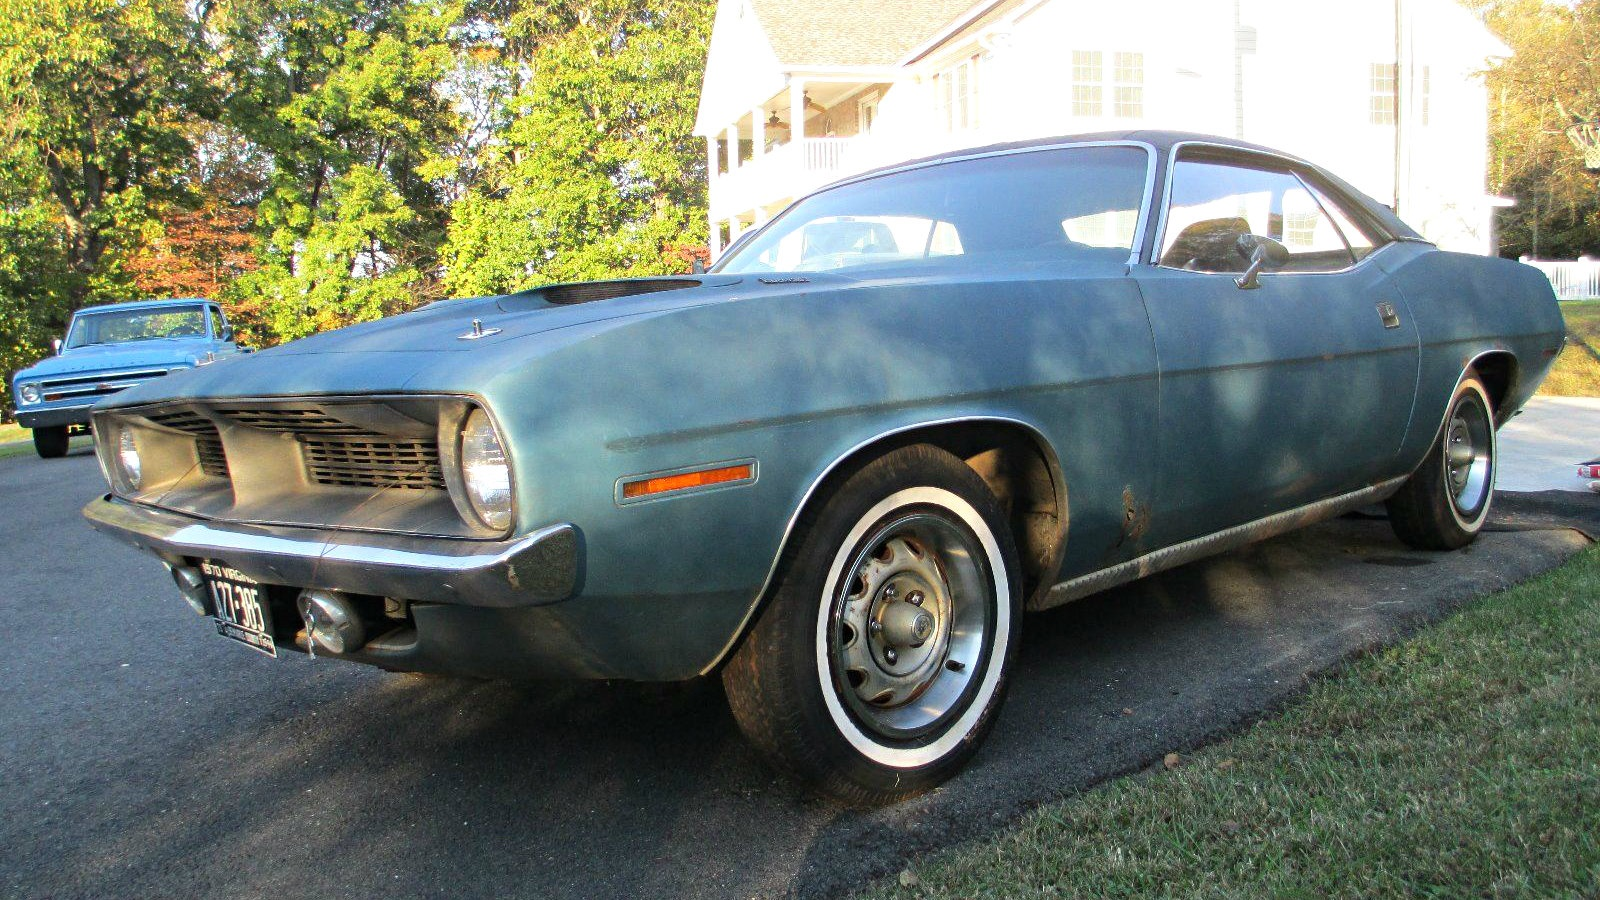 Cars For Sale Bay Area >> Original Condition Fish: 1970 Plymouth Barracuda